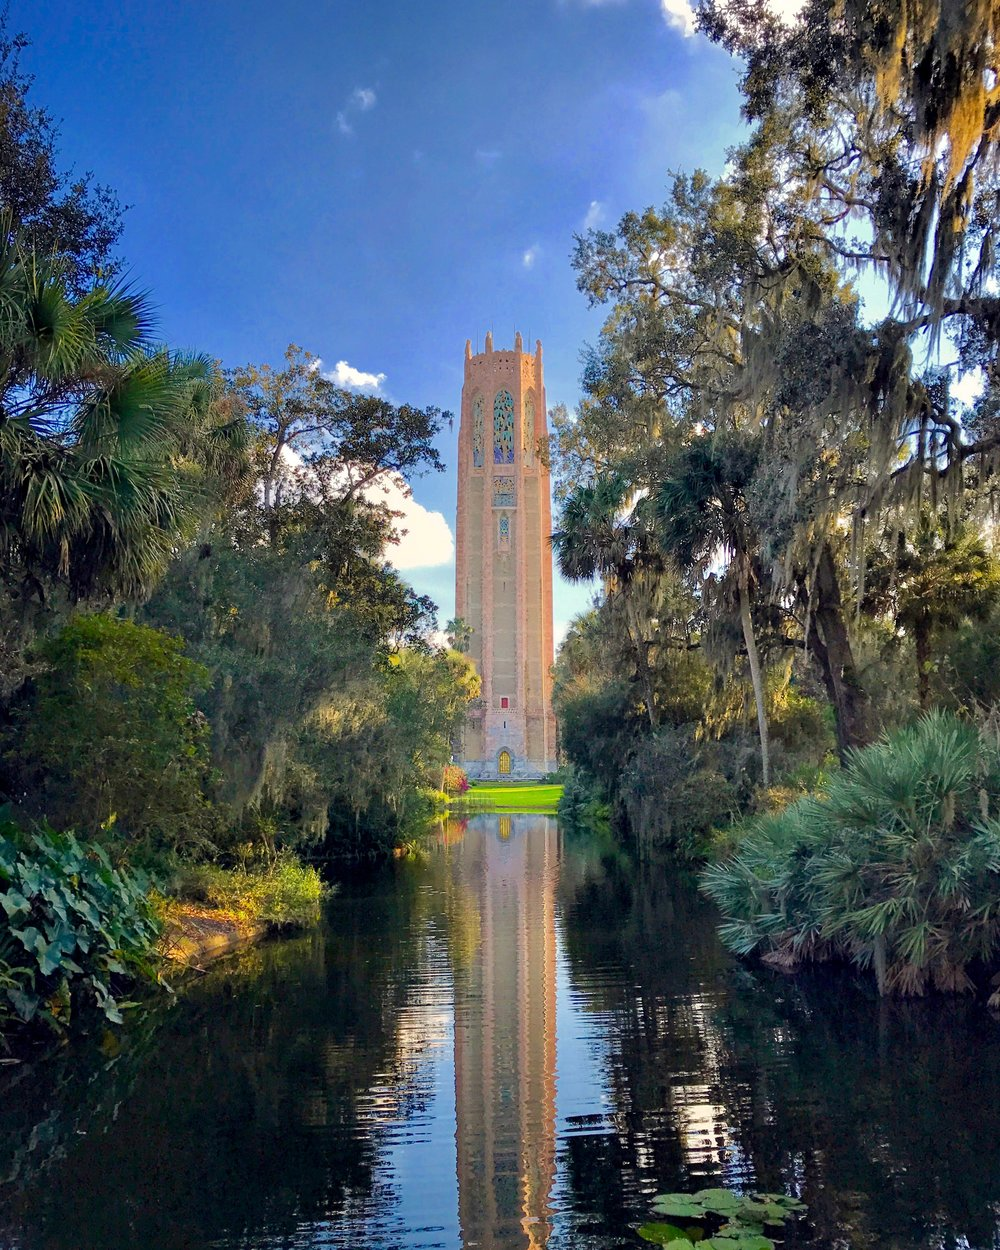 The color and texture of Bok Tower is much more impressive when viewed up close.